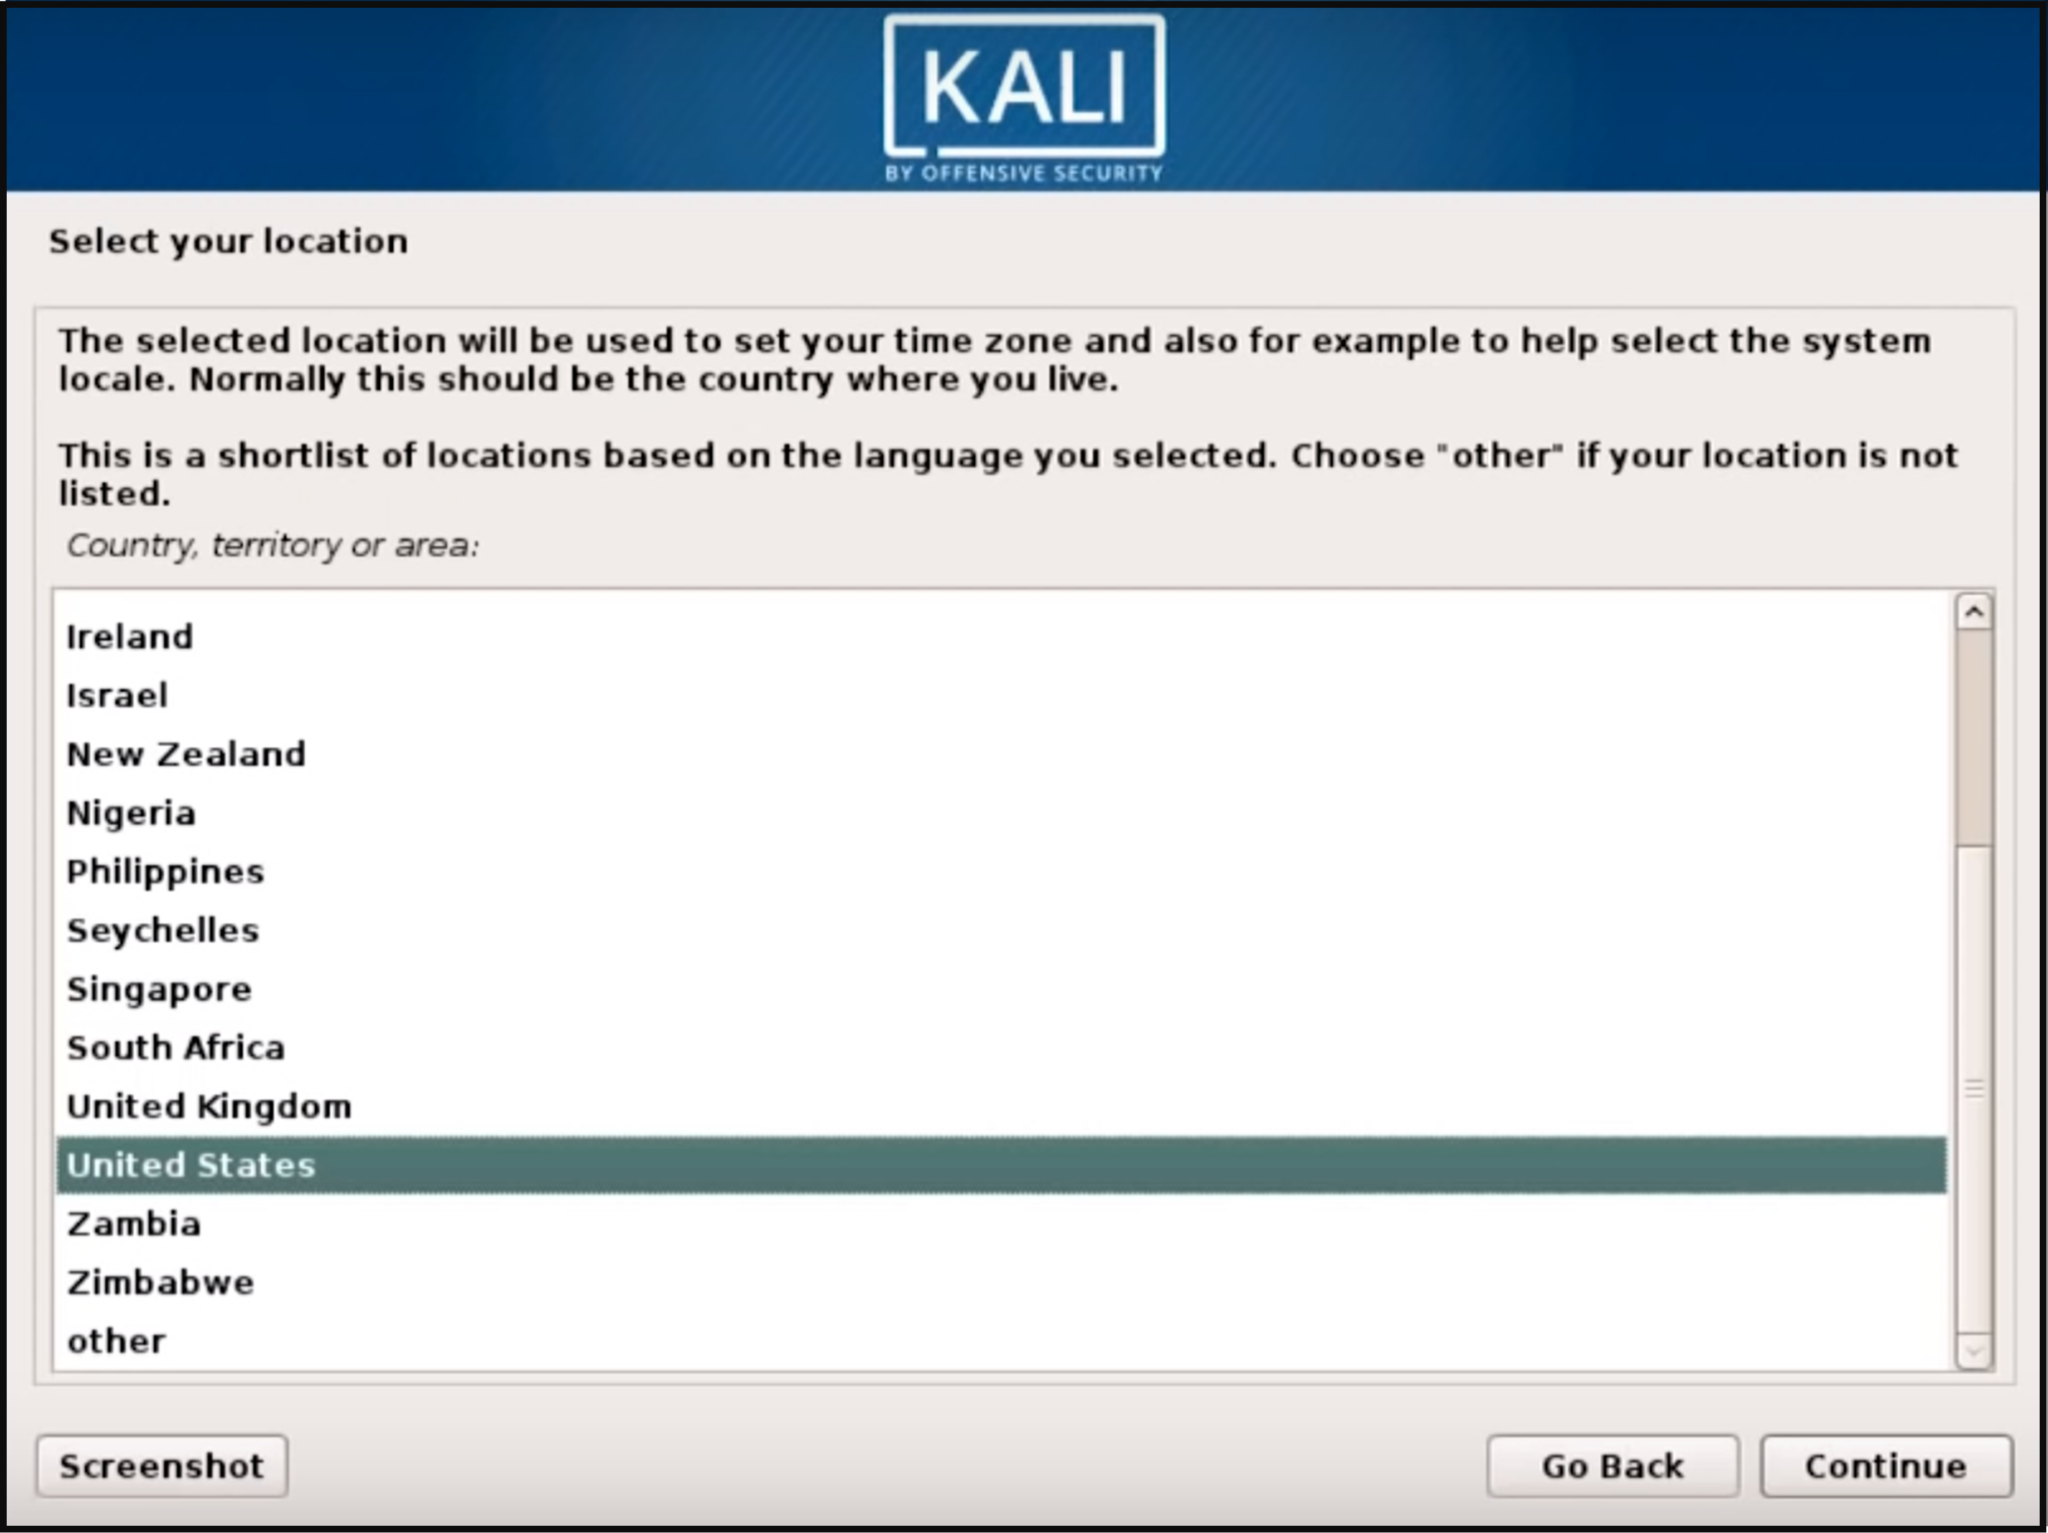 A Guide to Installing Kali Linux - DZone Open Source